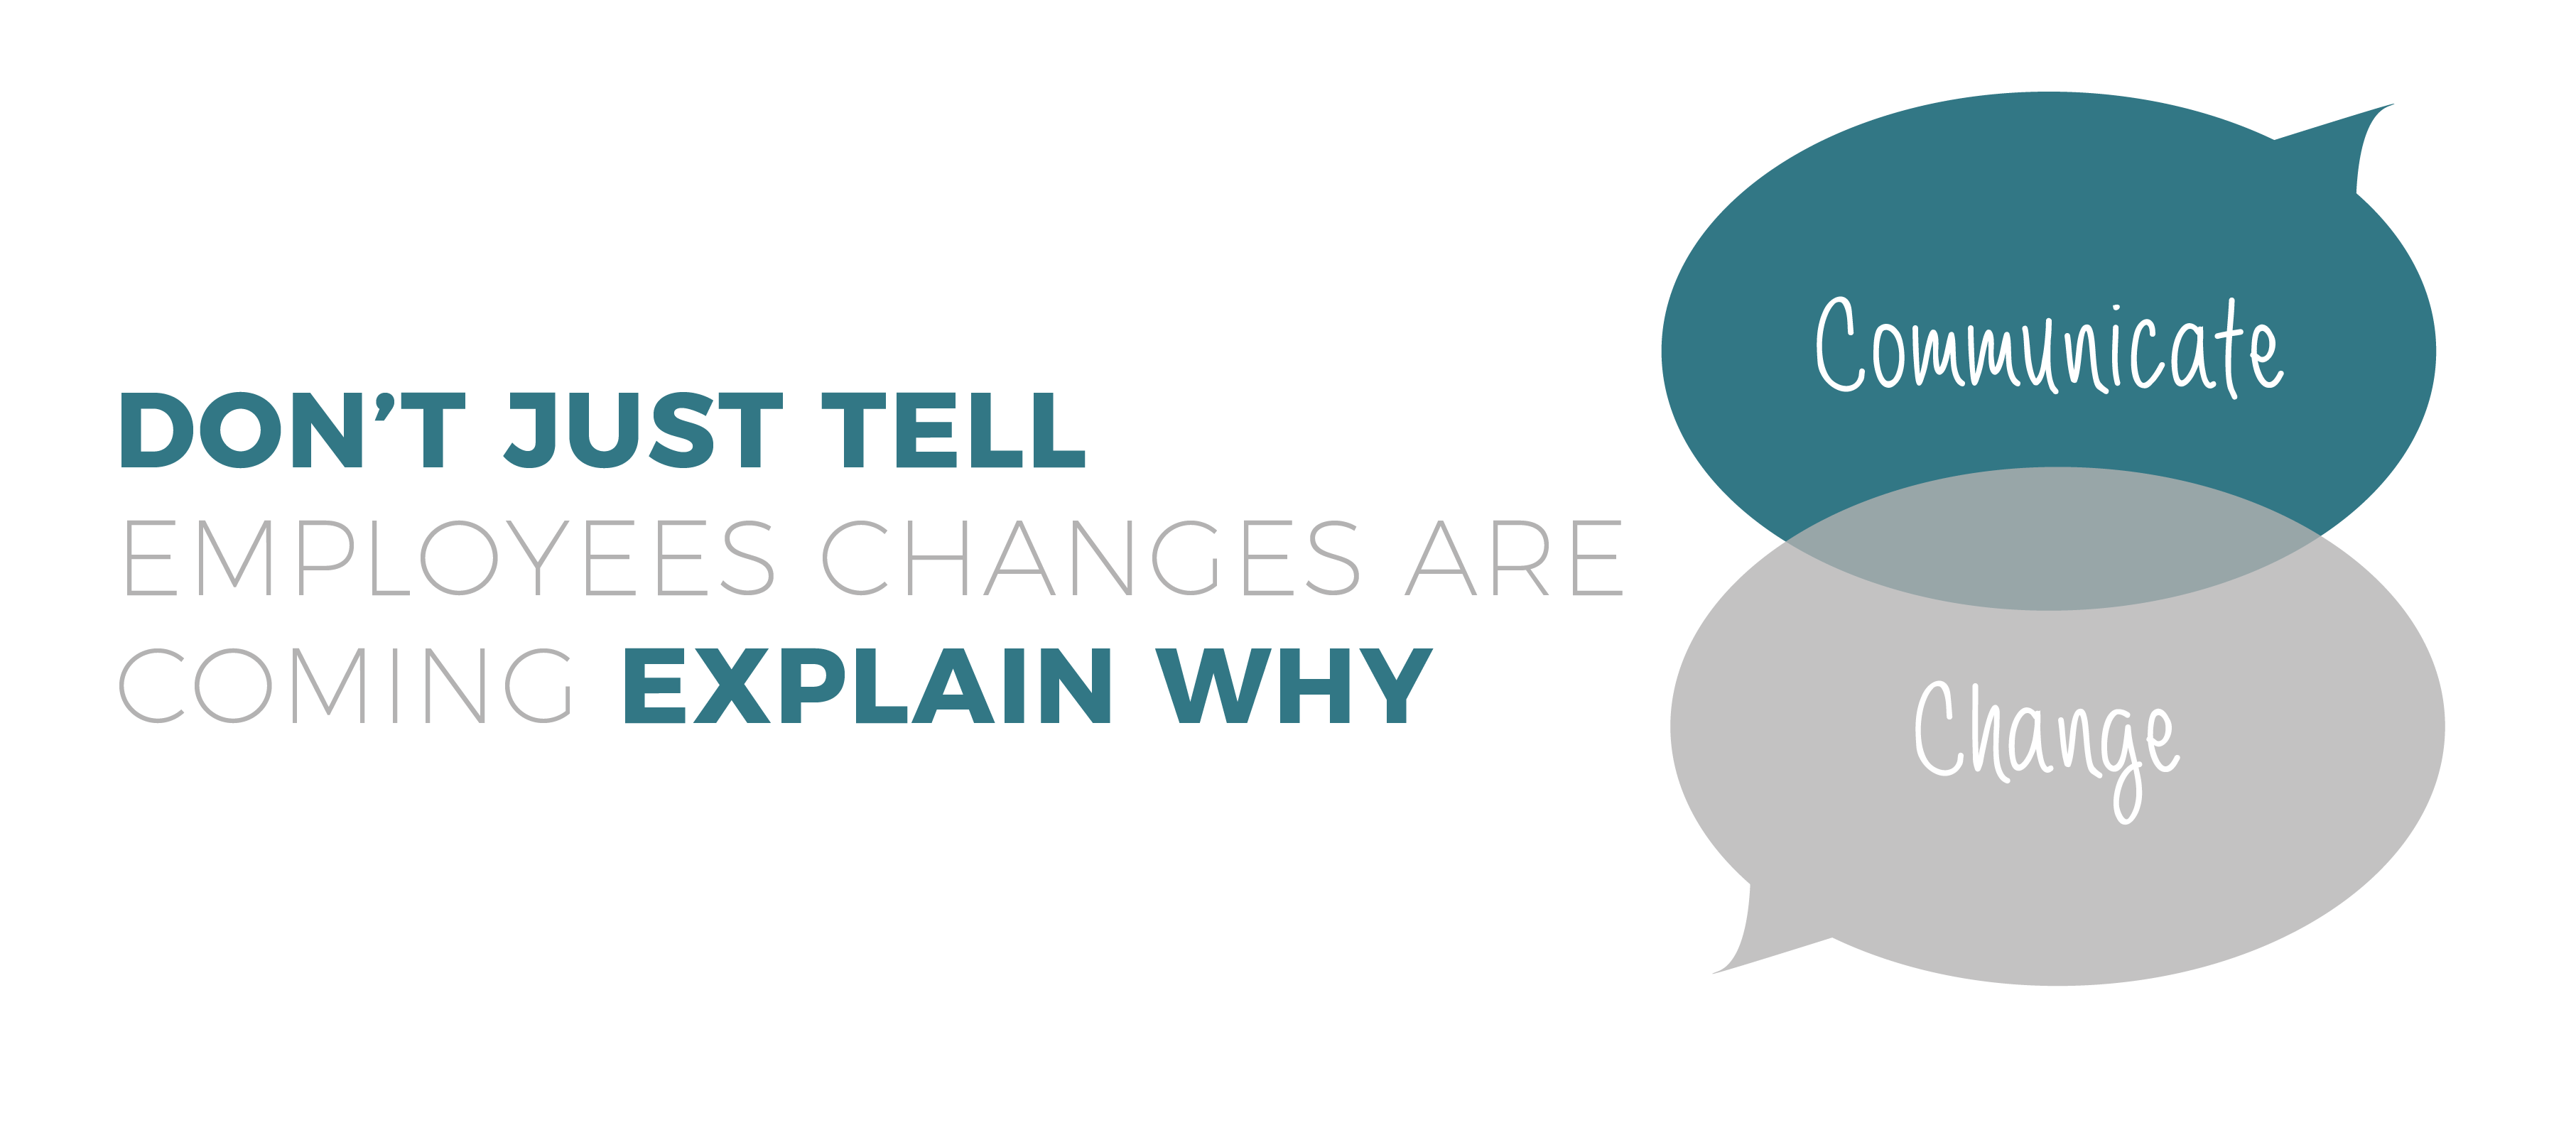 Don't Just Tell Employees Changes Are Coming - Explain Why